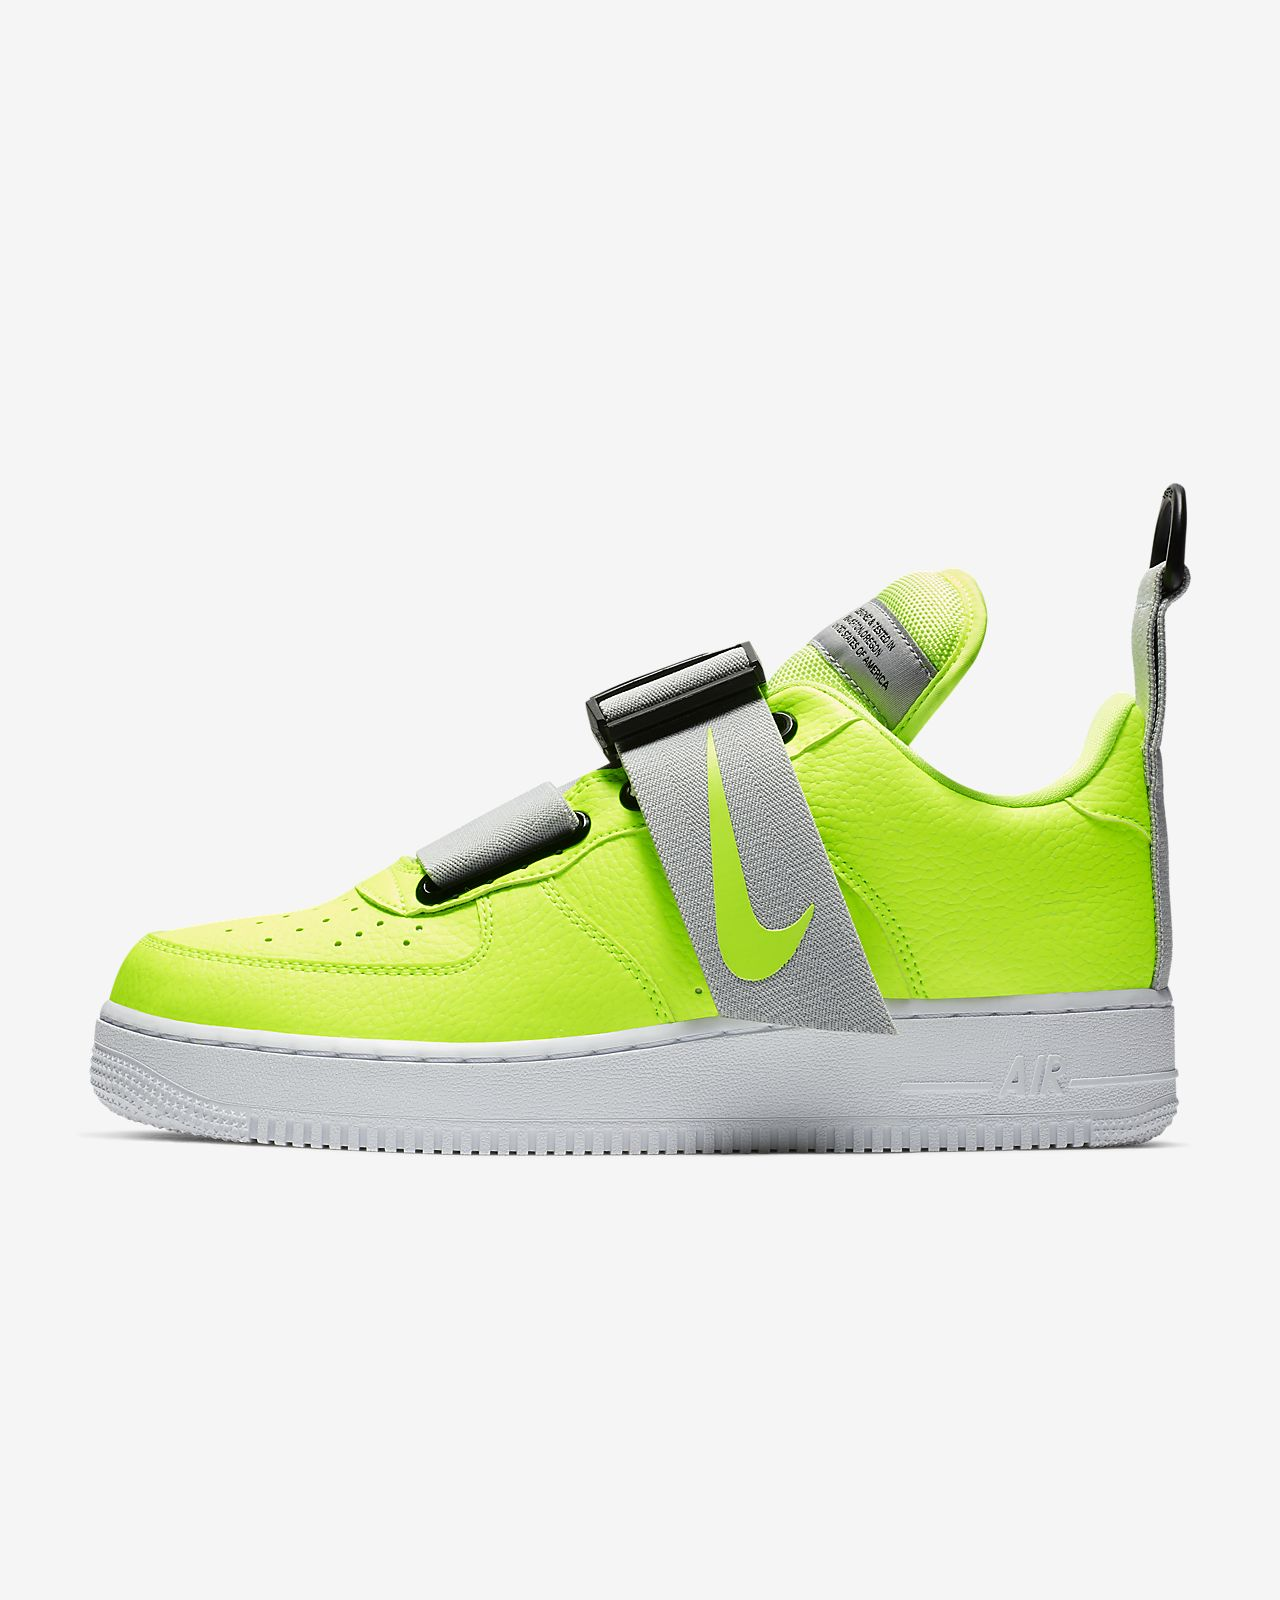 0b69aad4 Мужские кроссовки Nike Air Force 1 Utility. Nike.com RU